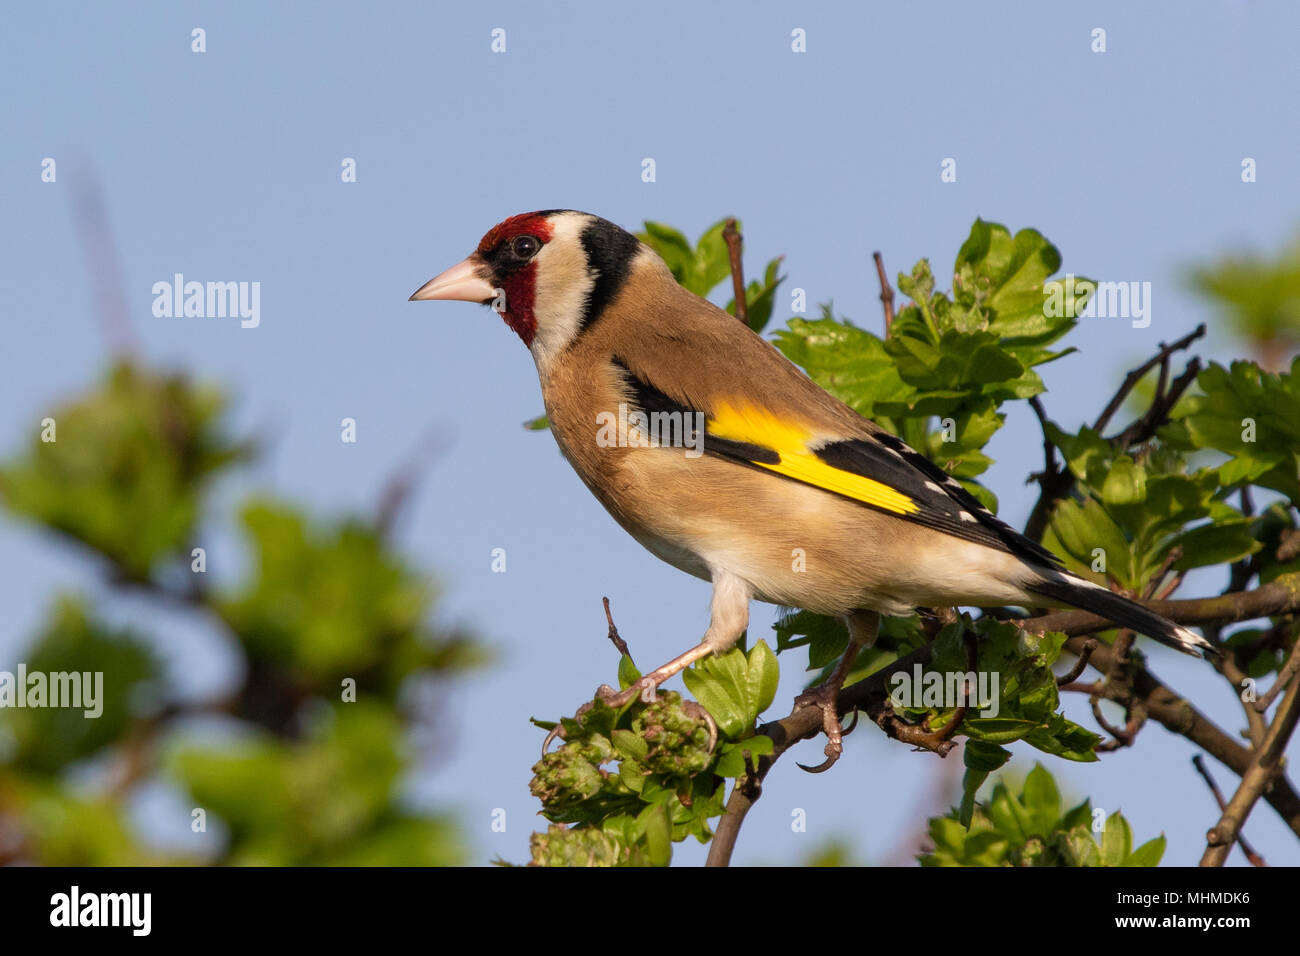 European Goldfinch (Carduelis carduelis) perched in a Hawthorn tree - Stock Image